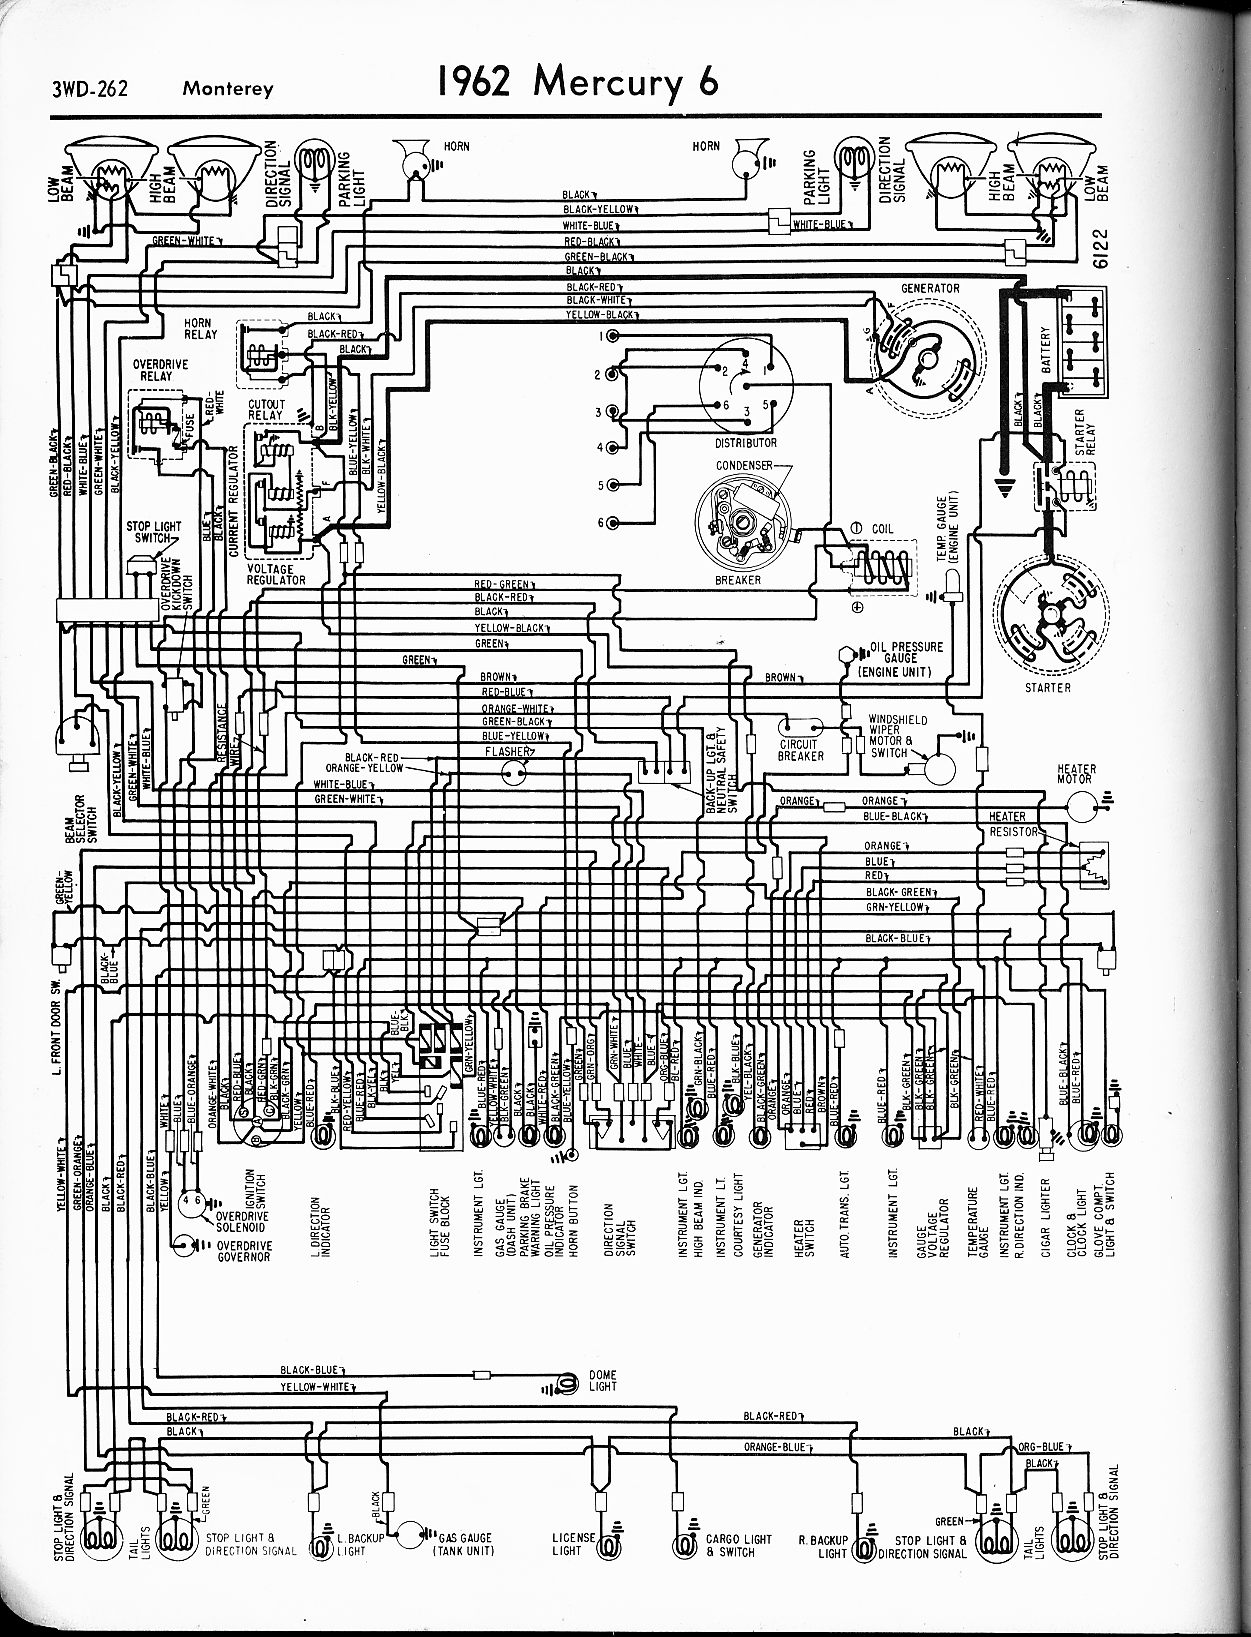 mercury wiring diagrams the old car manual project rh oldcarmanualproject com Ford F-150 4.6 Engine Diagram V8 Engine Exploded View